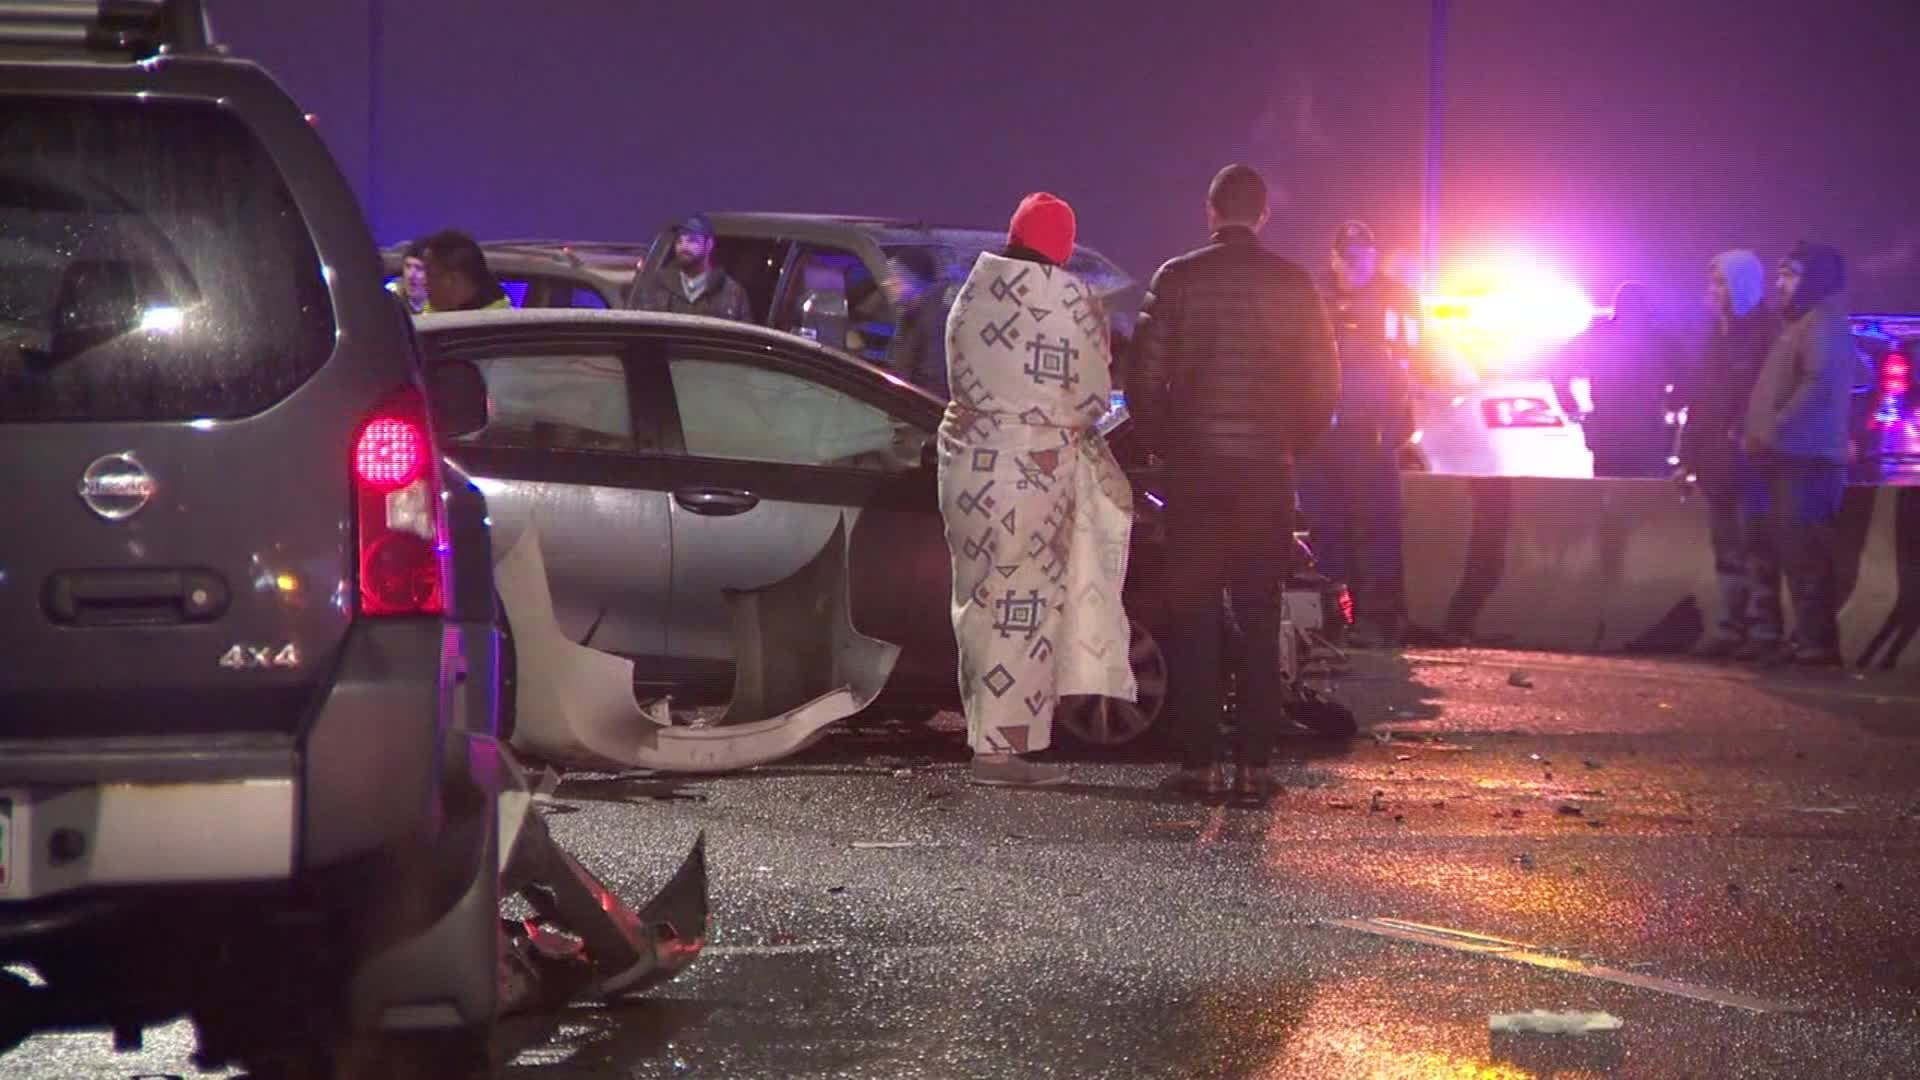 Bad weather is blamed for a pileup in Denver involving more than 50 vehicles